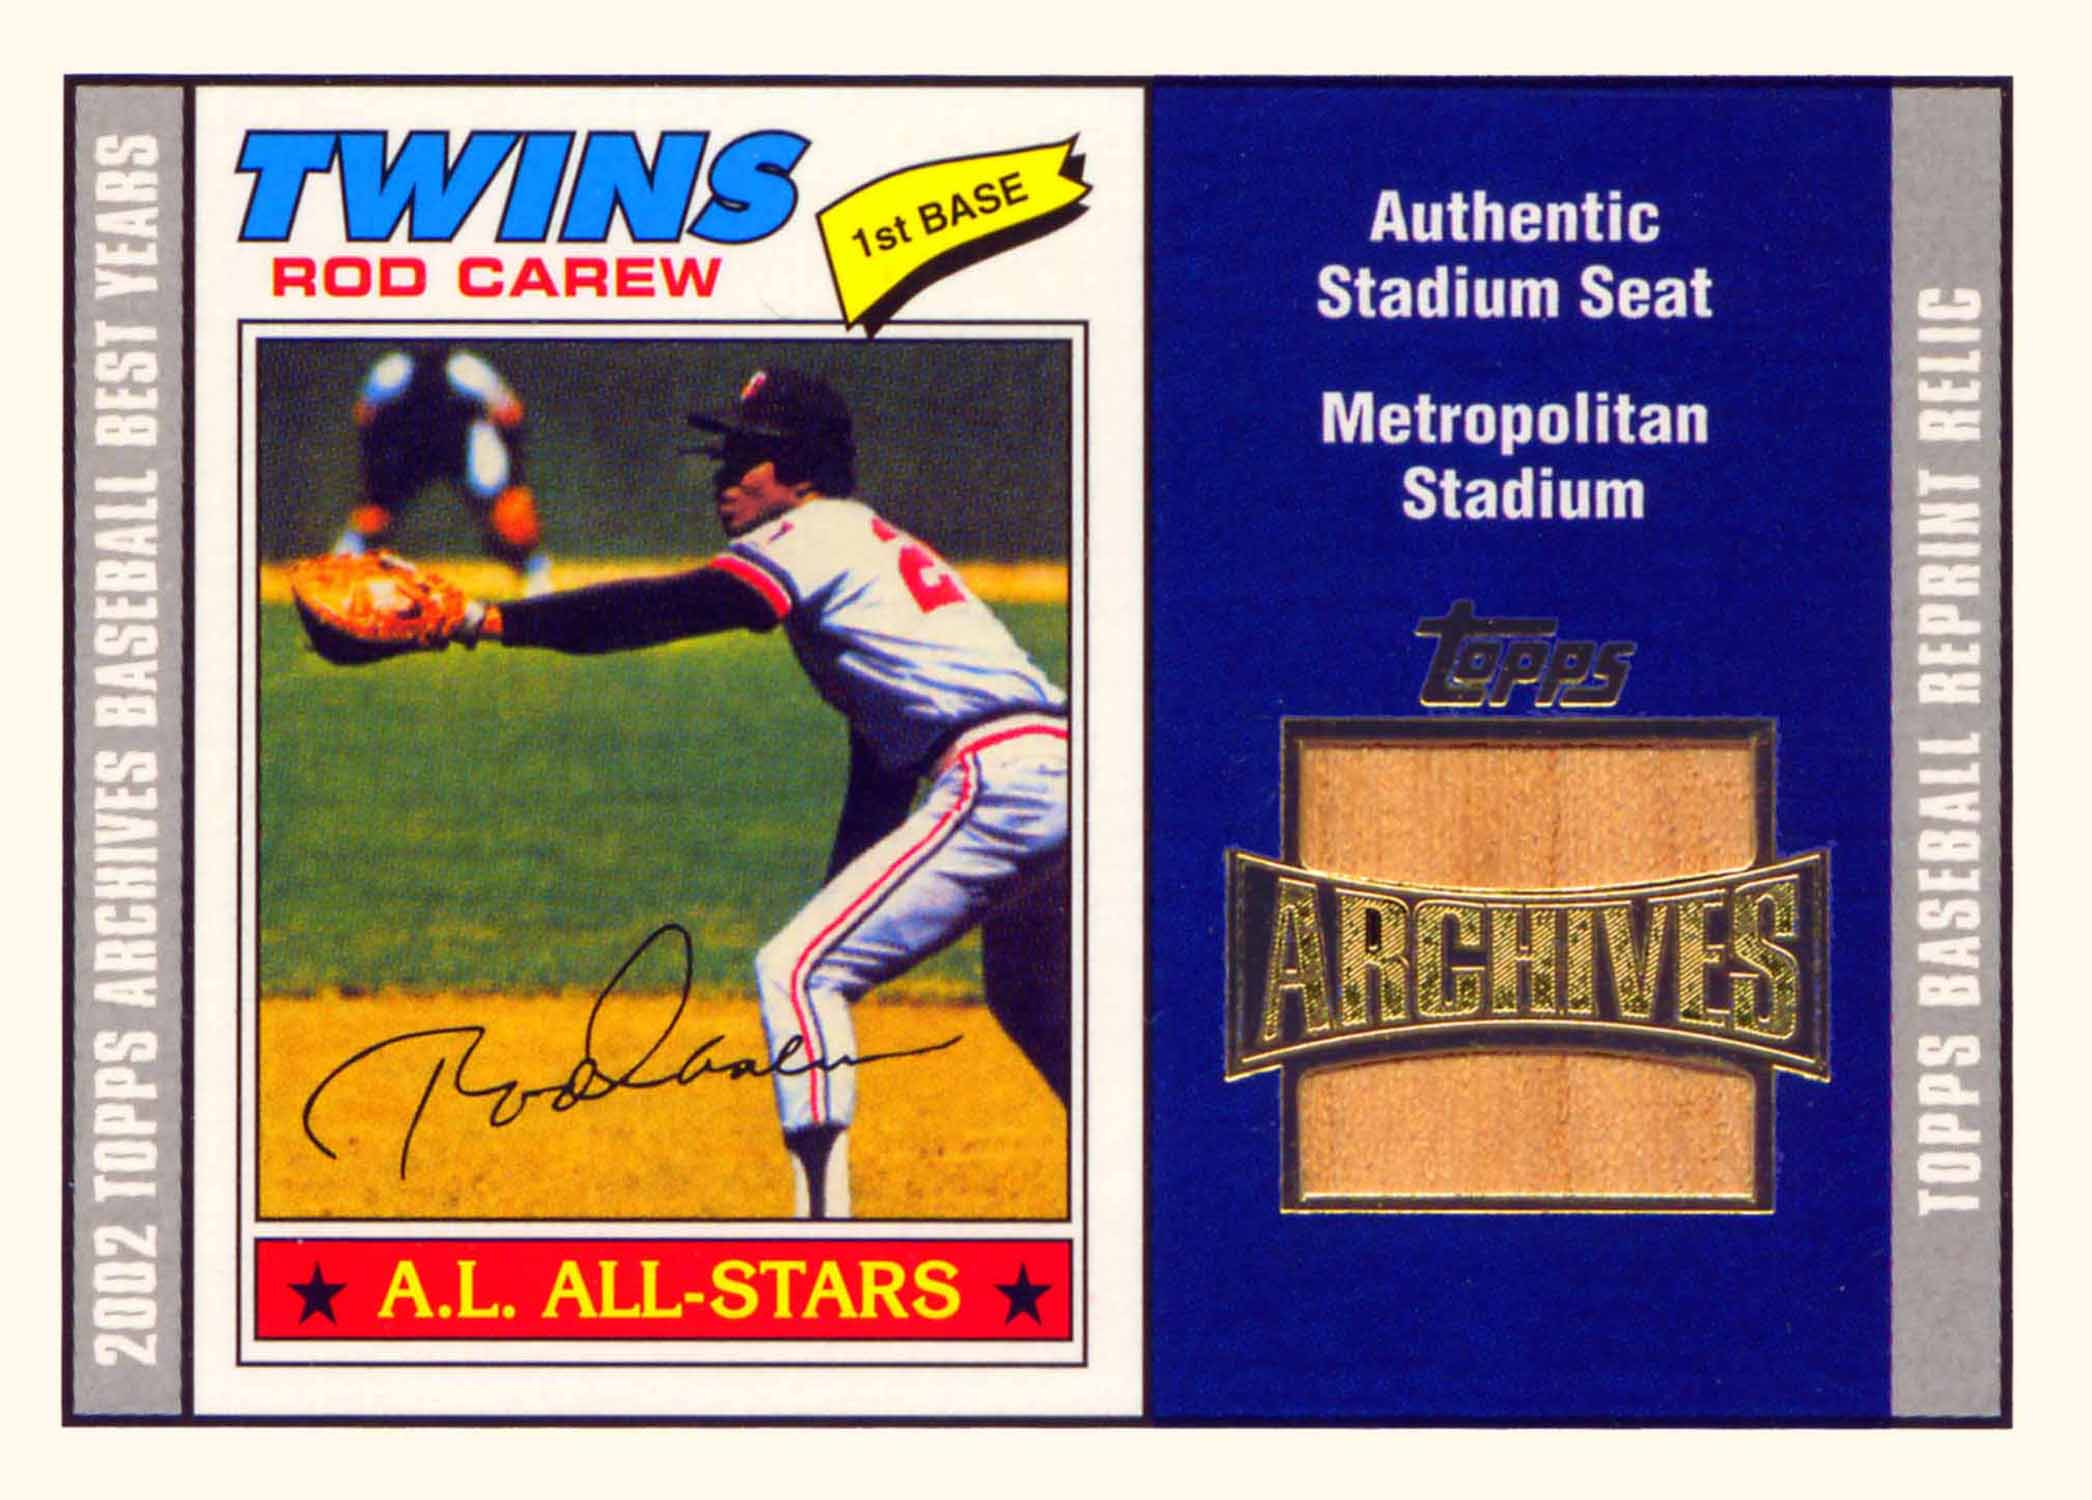 2002 Topps Archives Seat Relics